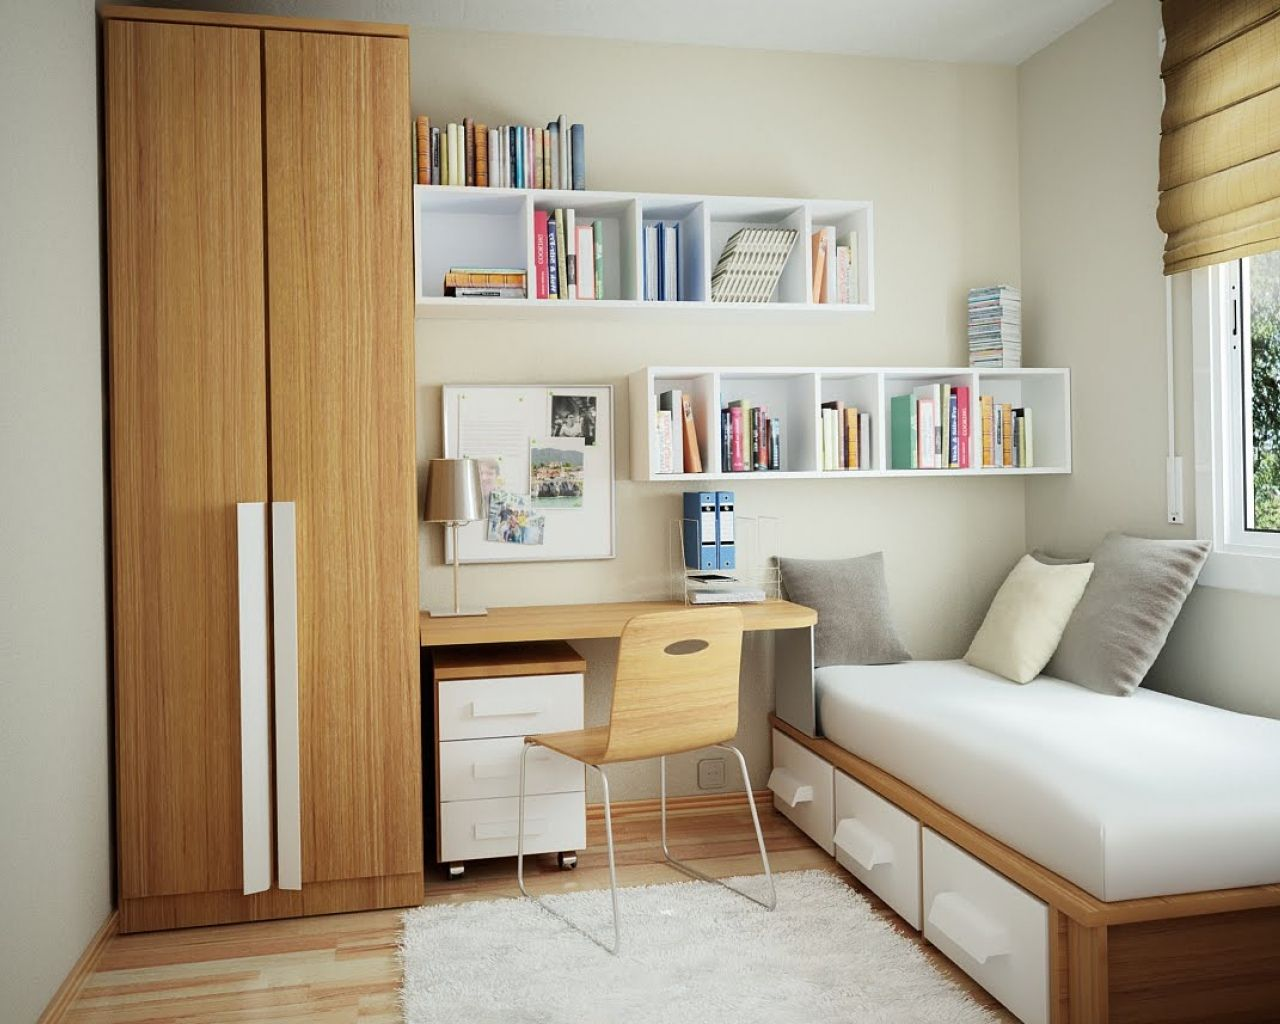 10 x 12 living room design 10×12 Bedroom Layout Google Search New Home Ideas Pinterest  1024 X 1280